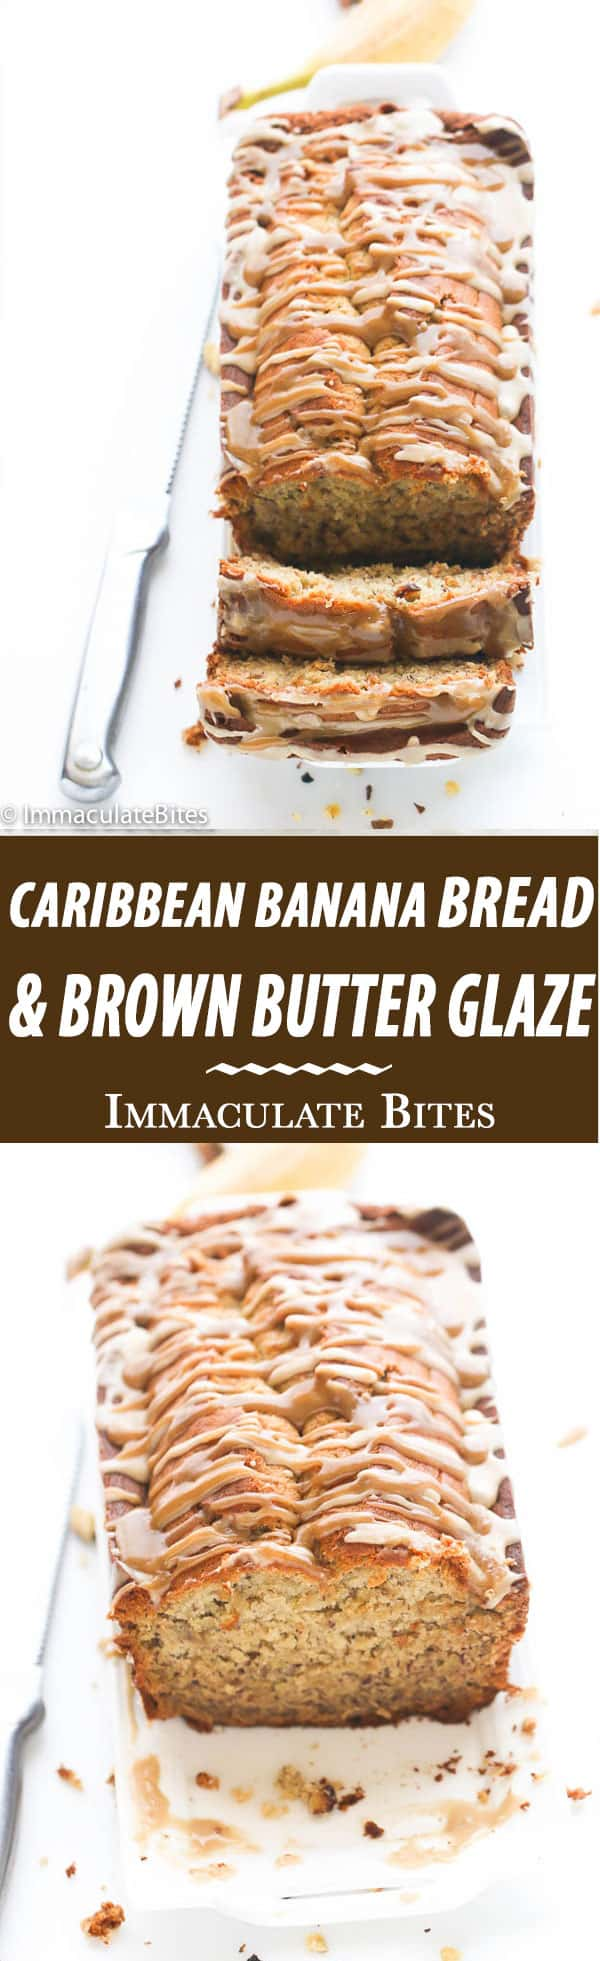 Tender and moist Caribbean Banana Nut Bread  smothered in a buttery brown sugar glaze